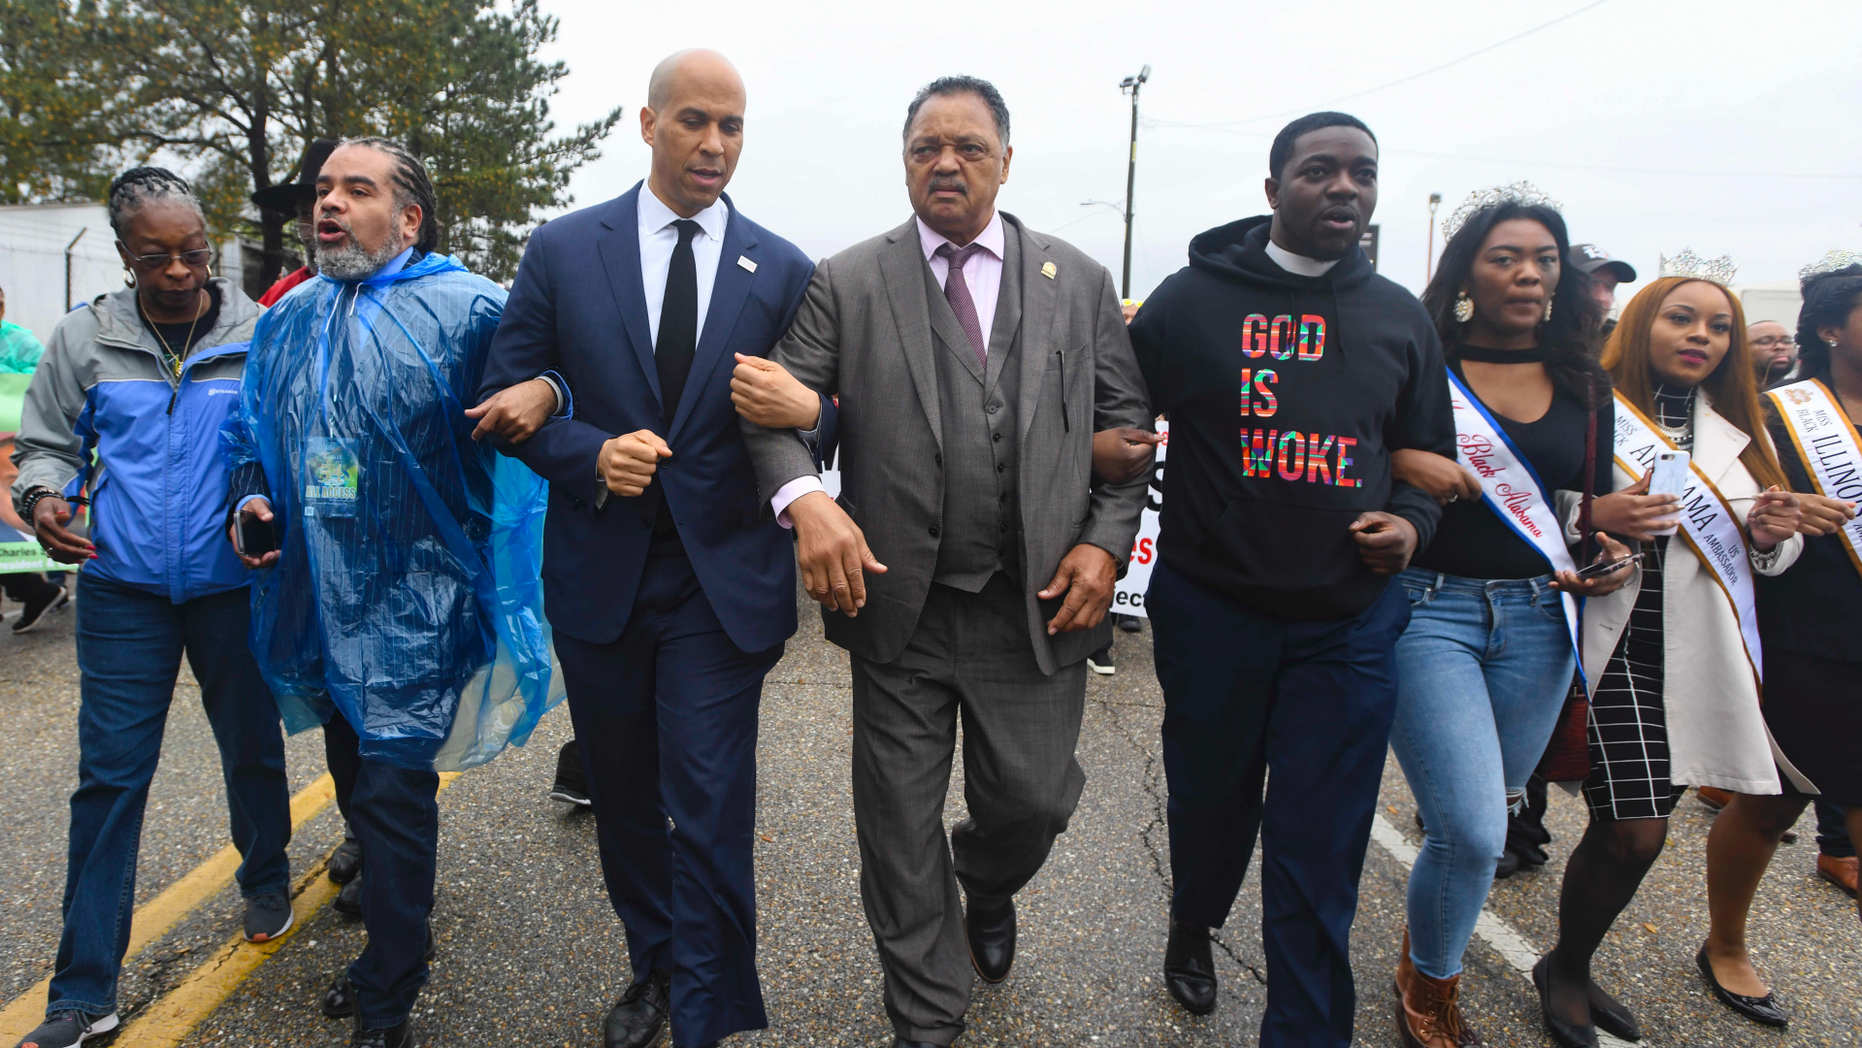 """U.S. Sen. Cory Booker, D-N.J., third from left, and the Rev. Jesse Jackson march to cross the Edmund Pettus Bridge Sunday, March 3, 2019, during the Bloody Sunday commemoration in Selma, Ala.  The infamous """"Bloody Sunday"""" on March 7, 1965, galvanized support for the passage of the Voting Rights Act that year. (AP Photo/Julie Bennett)"""